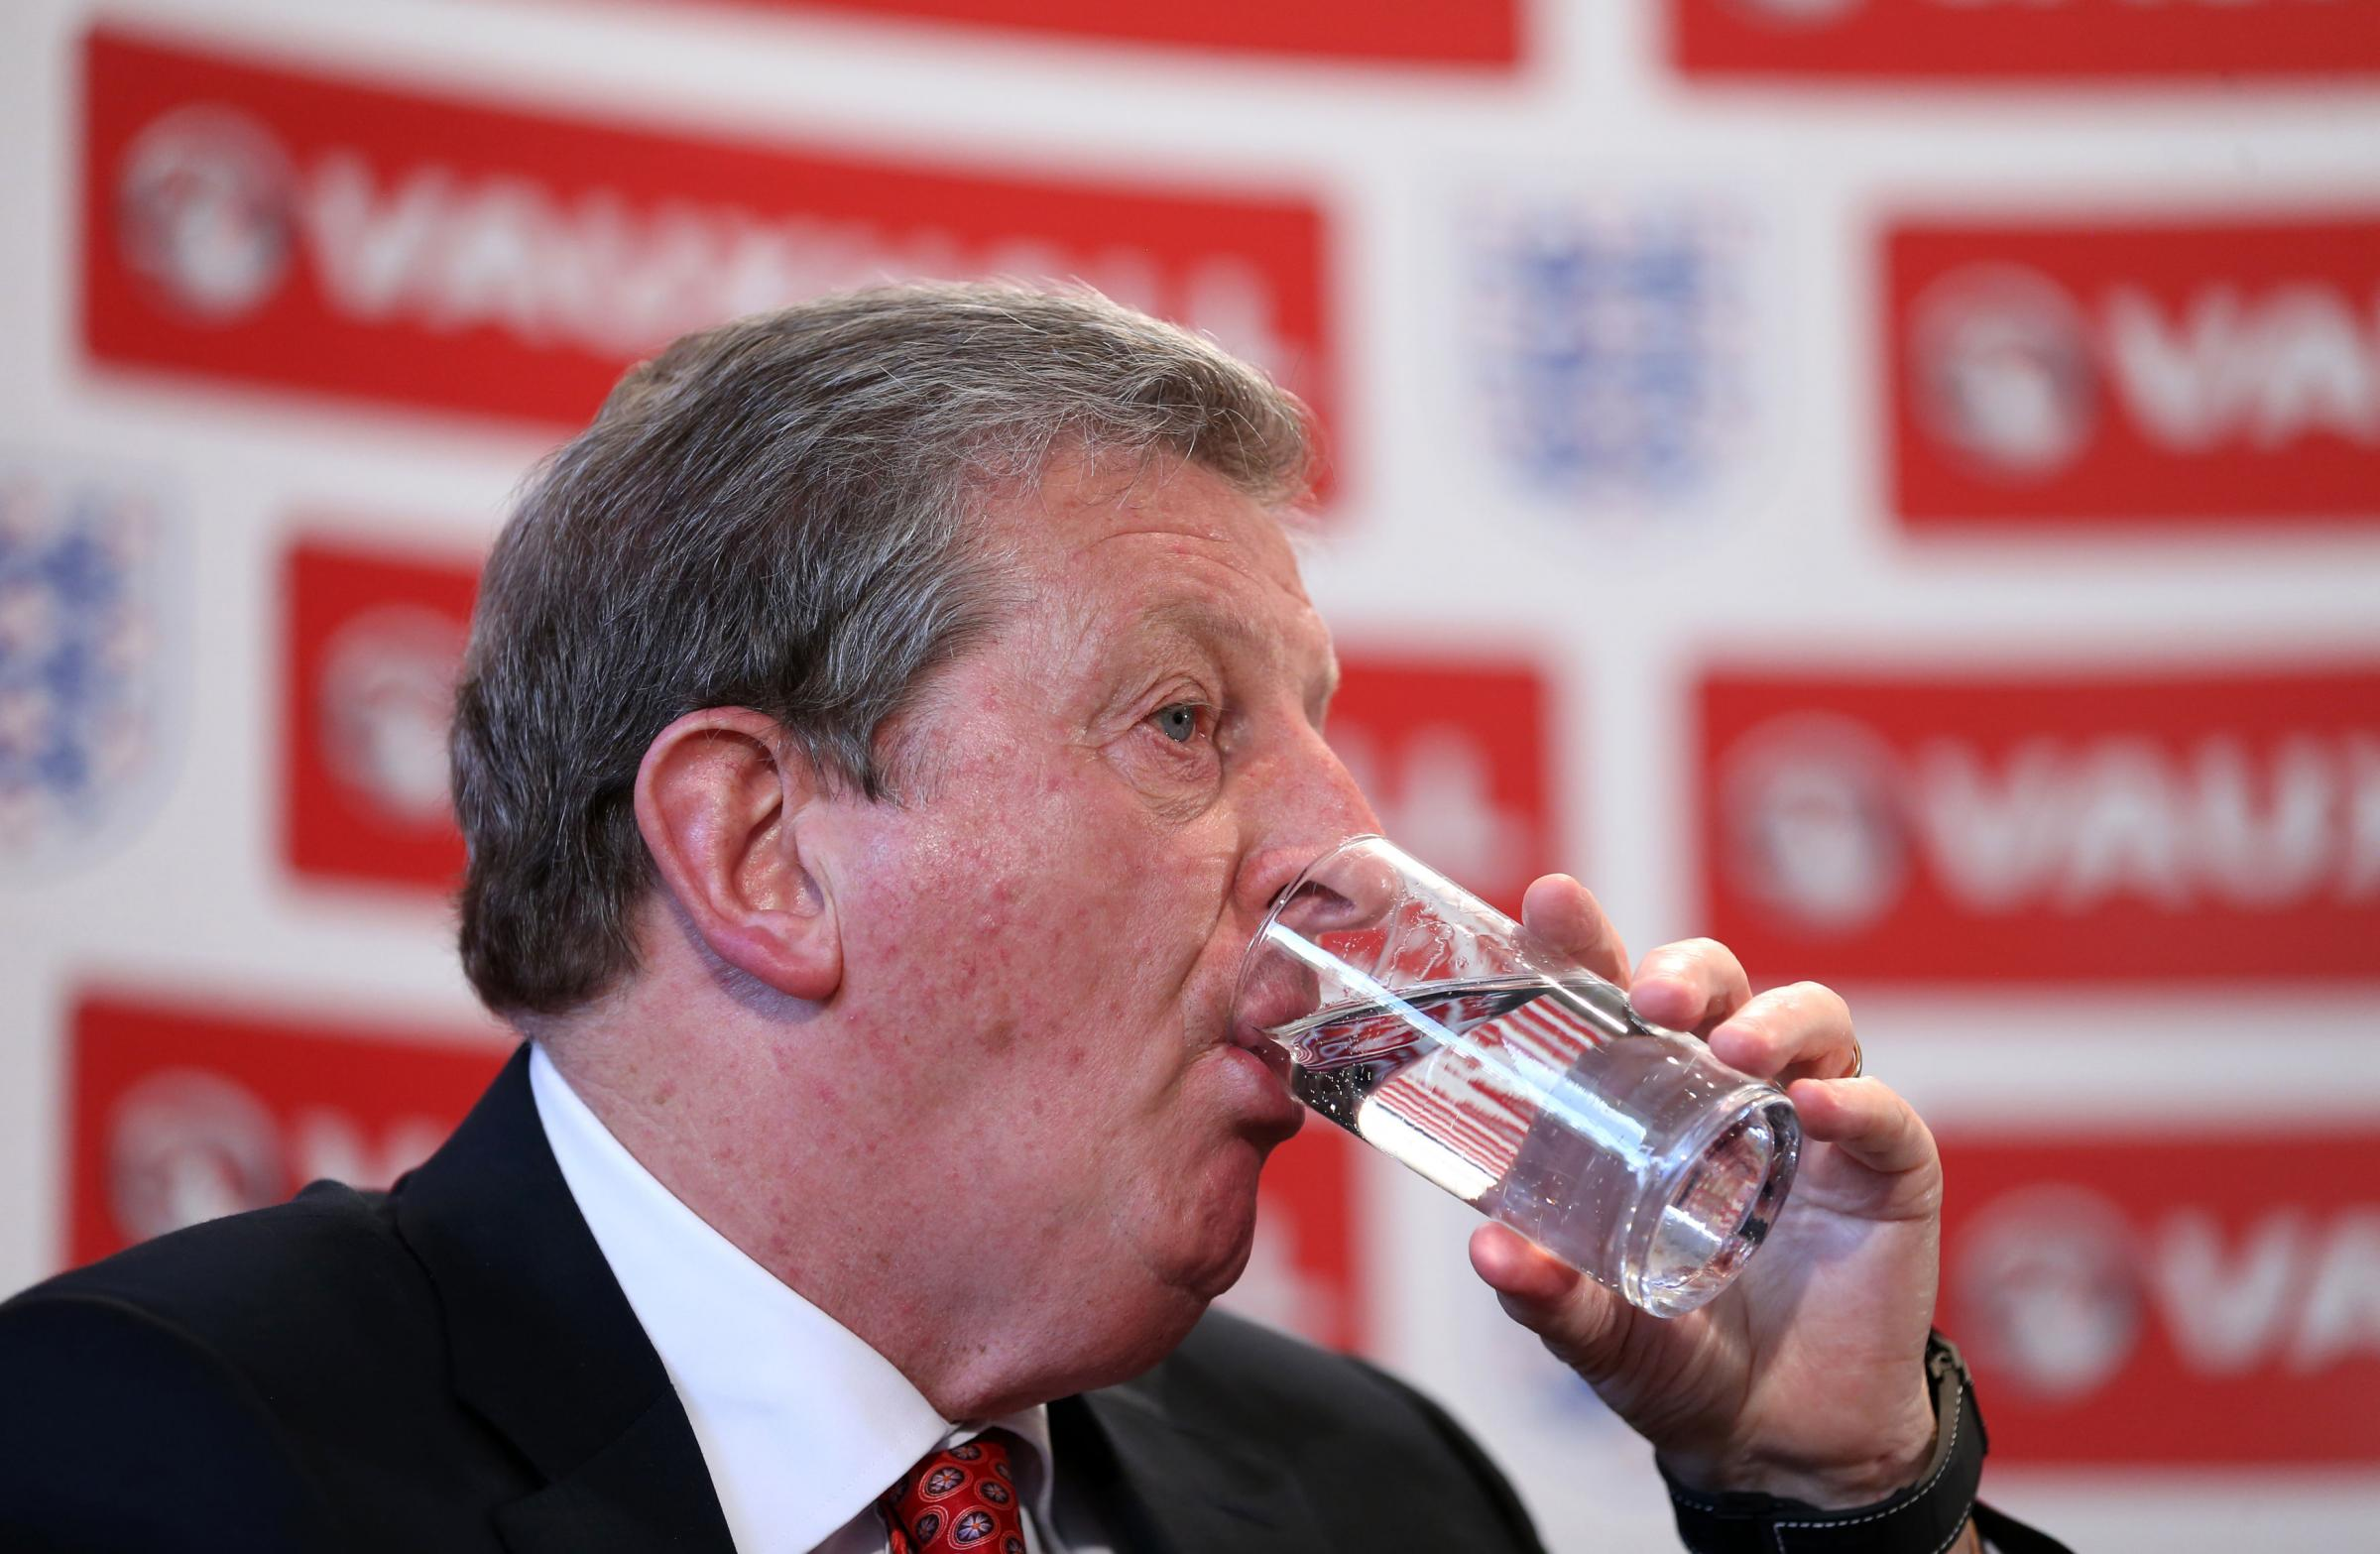 STAY FOCUSED: England manager Roy Hodgson won't allow his players to ease up in tonight's friendly with Peru at Wembley – their final home friendly game before heading to Brazil for the World Cup finals